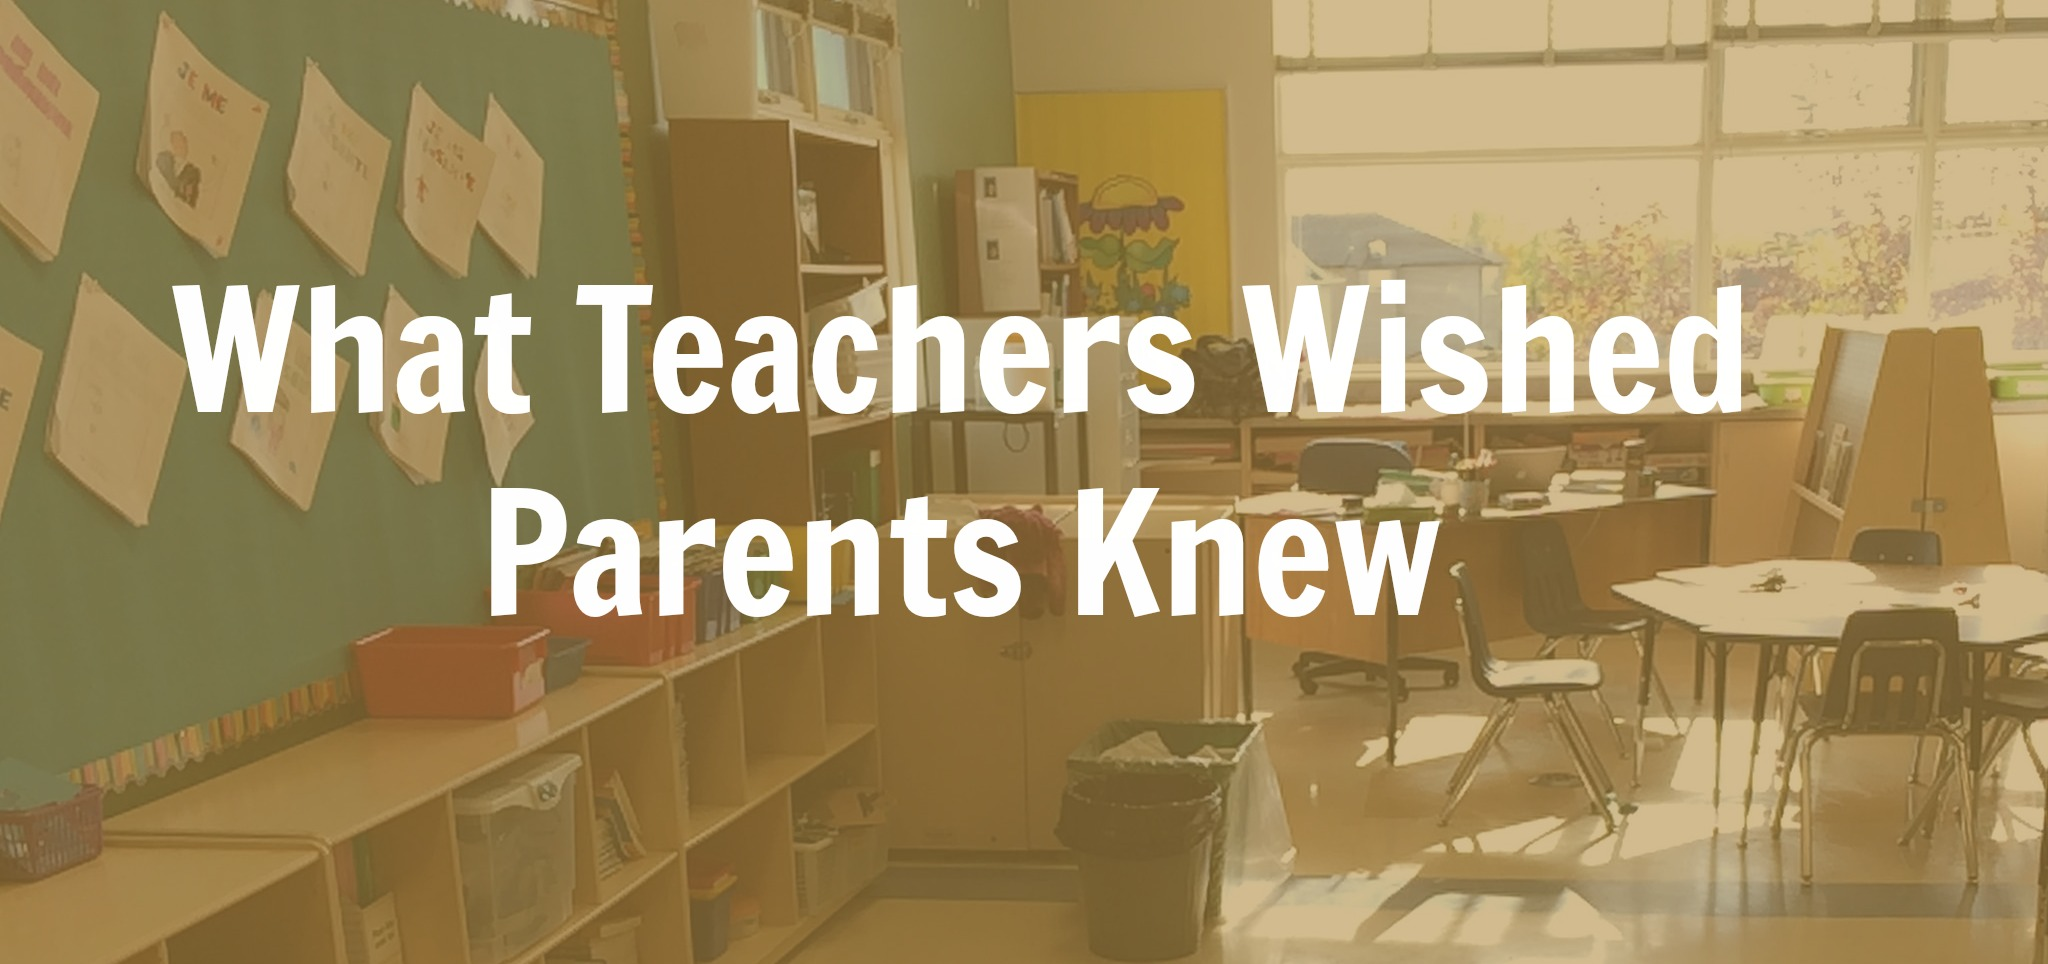 What Teachers Wished Parents Knew